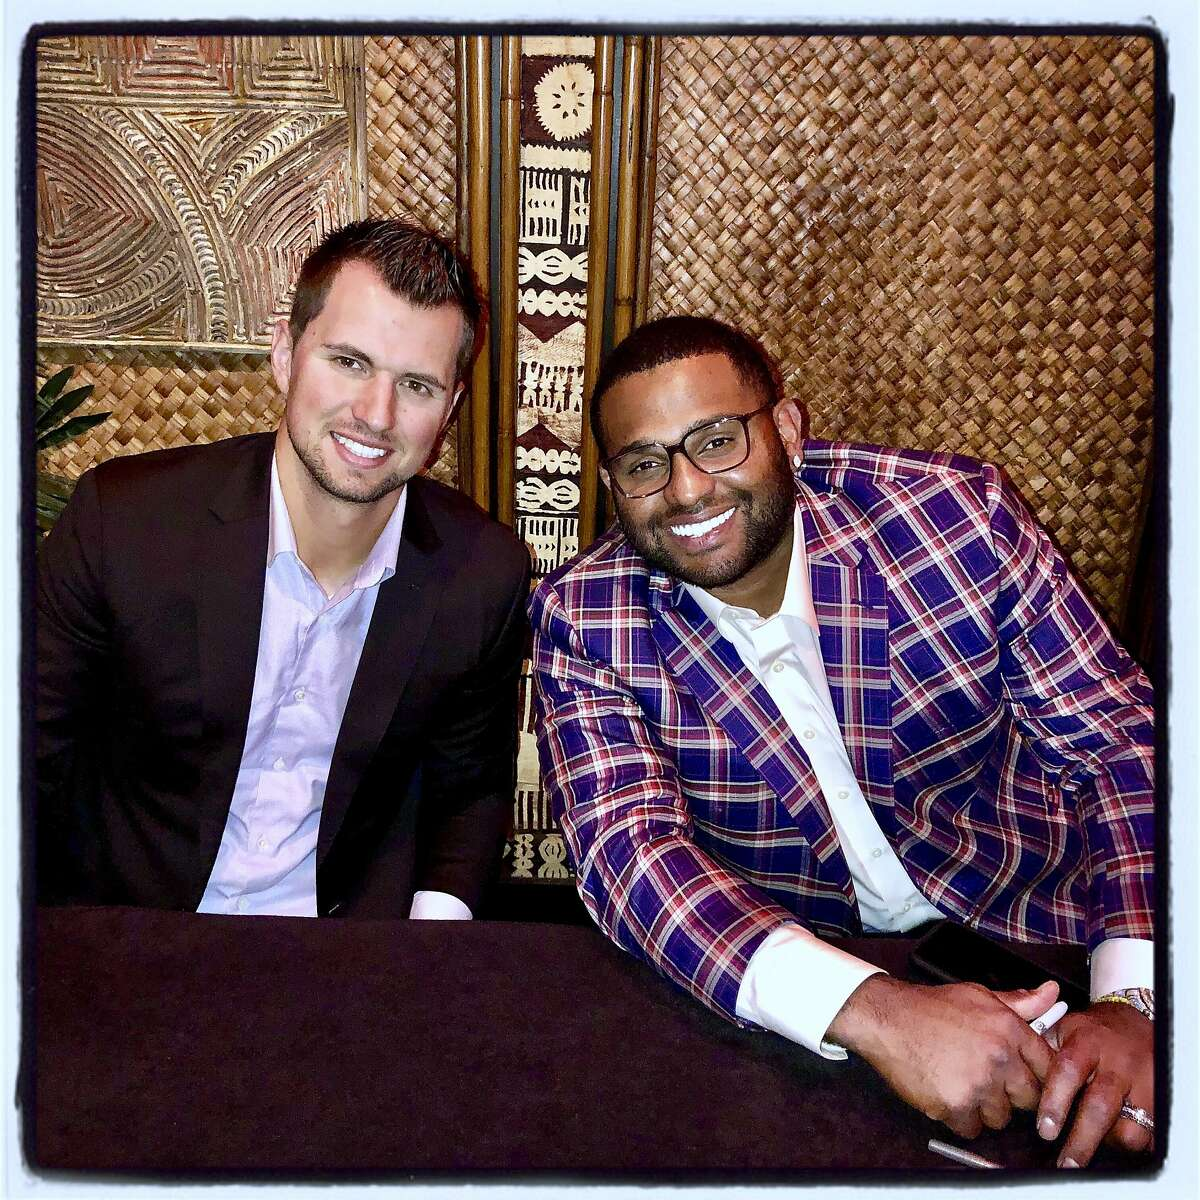 Giants players Joe Panik (left) and Pablo Sandoval at the Play Ball Lunch. March 29, 2019.